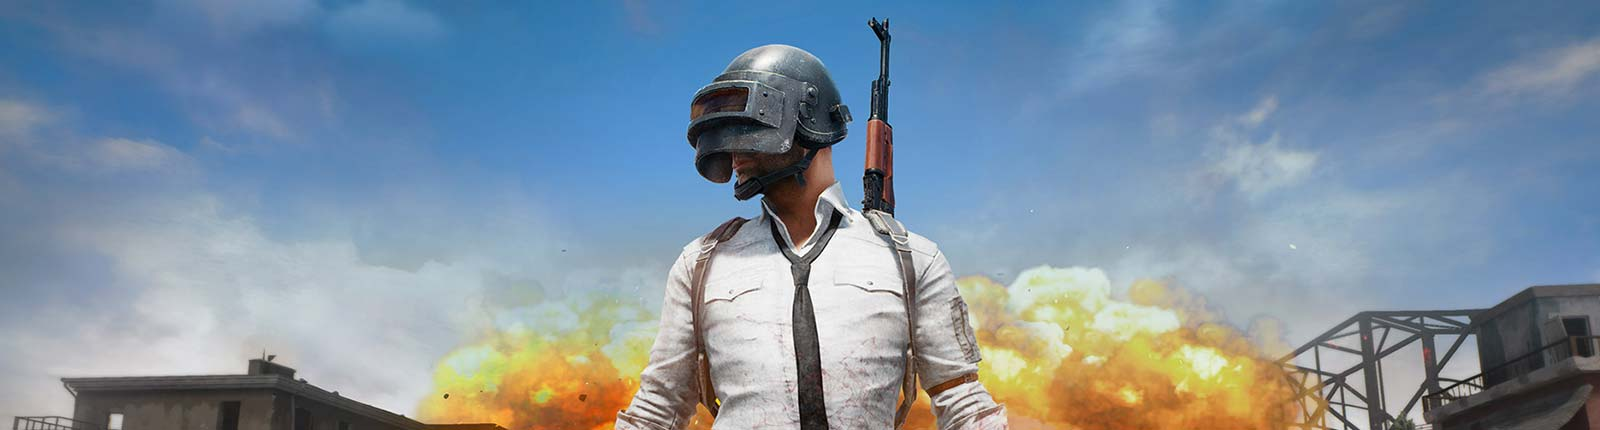 Playerunknown's Battlegrounds Ersteindruck